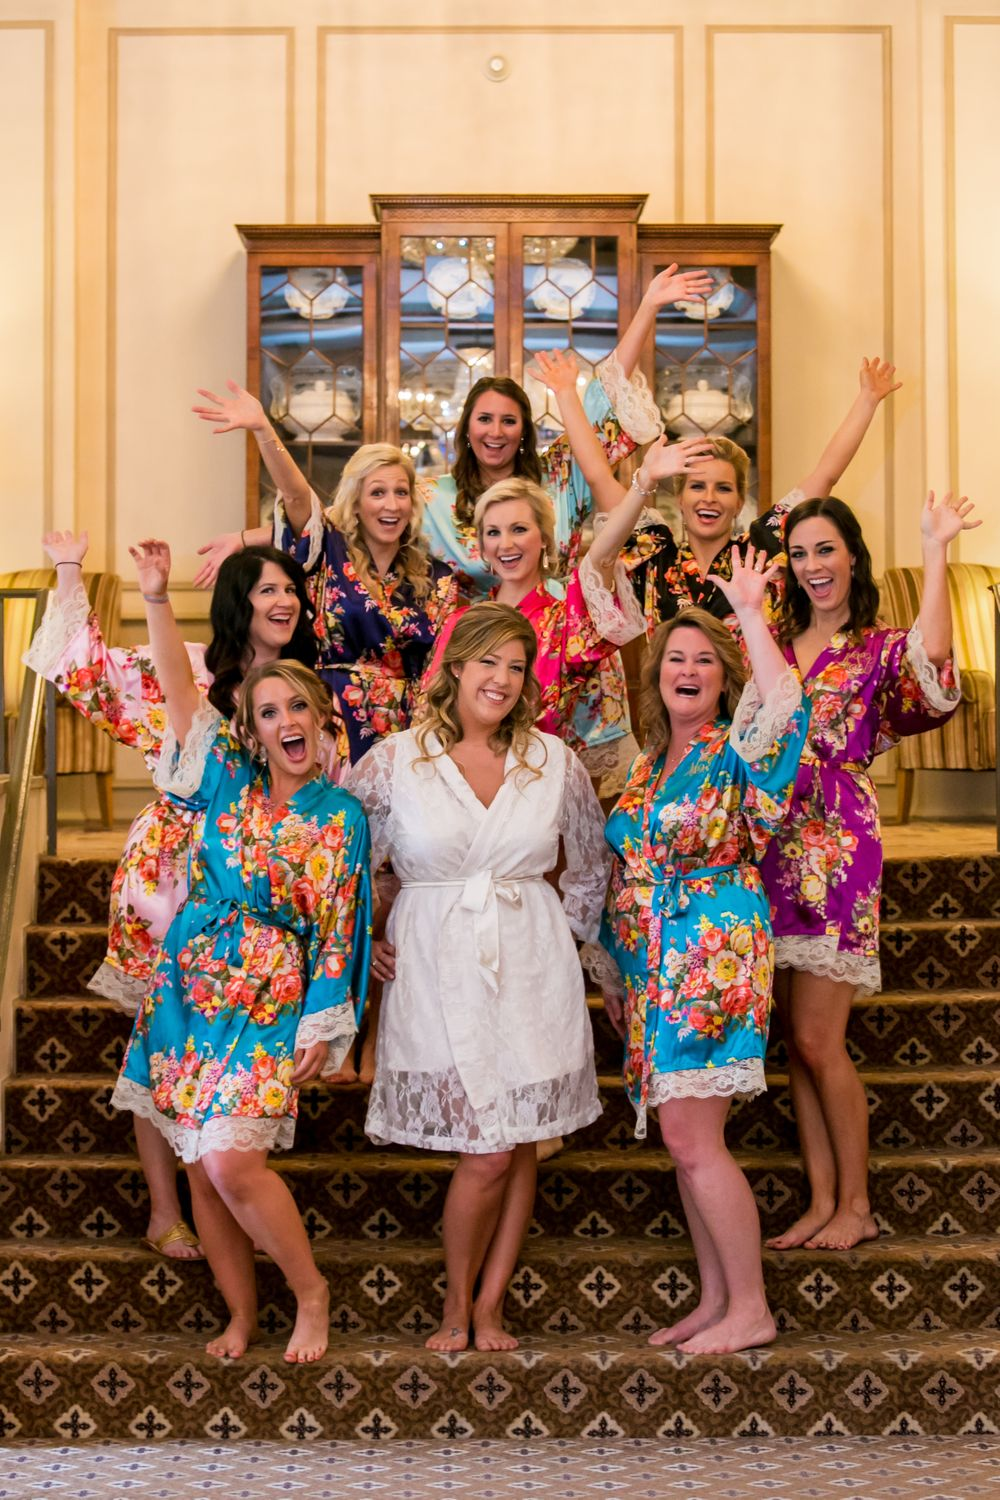 Alissa and her bridesmaids pose in robes while getting ready for the wedding at Francis Marion Hotel in Charleston, SC